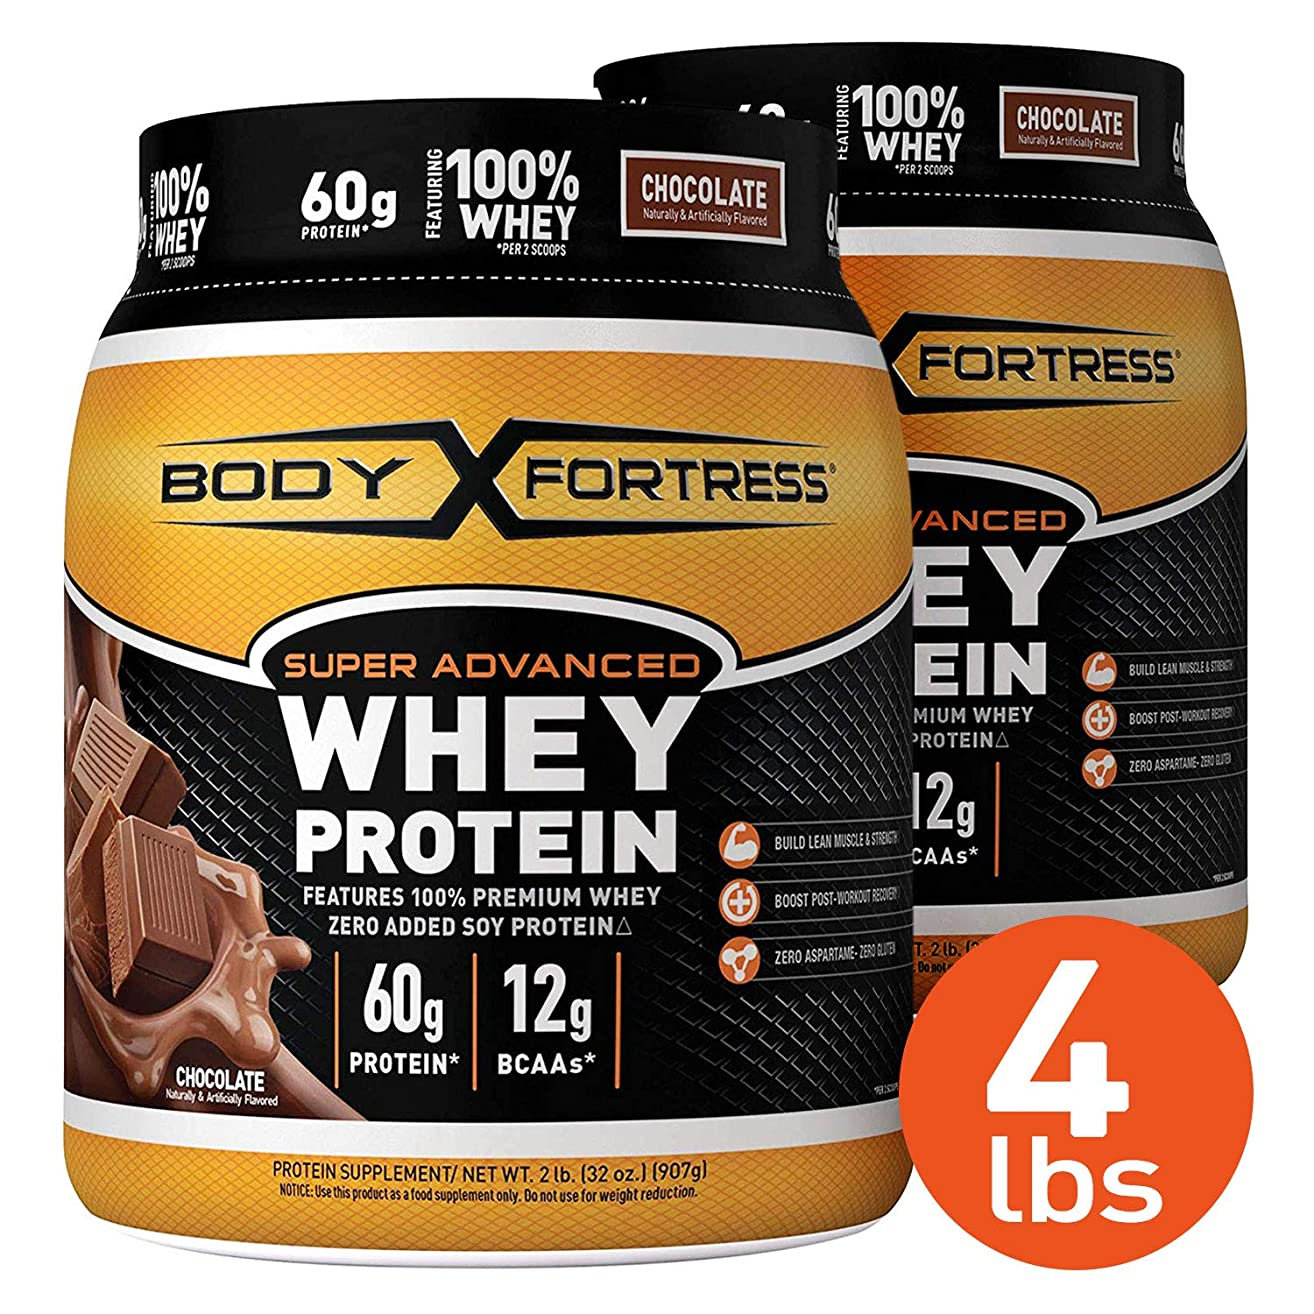 Body Fortress Super Advanced Whey Protein Powder, Gluten Free, Chocolate, 2 lb, 2 Pack